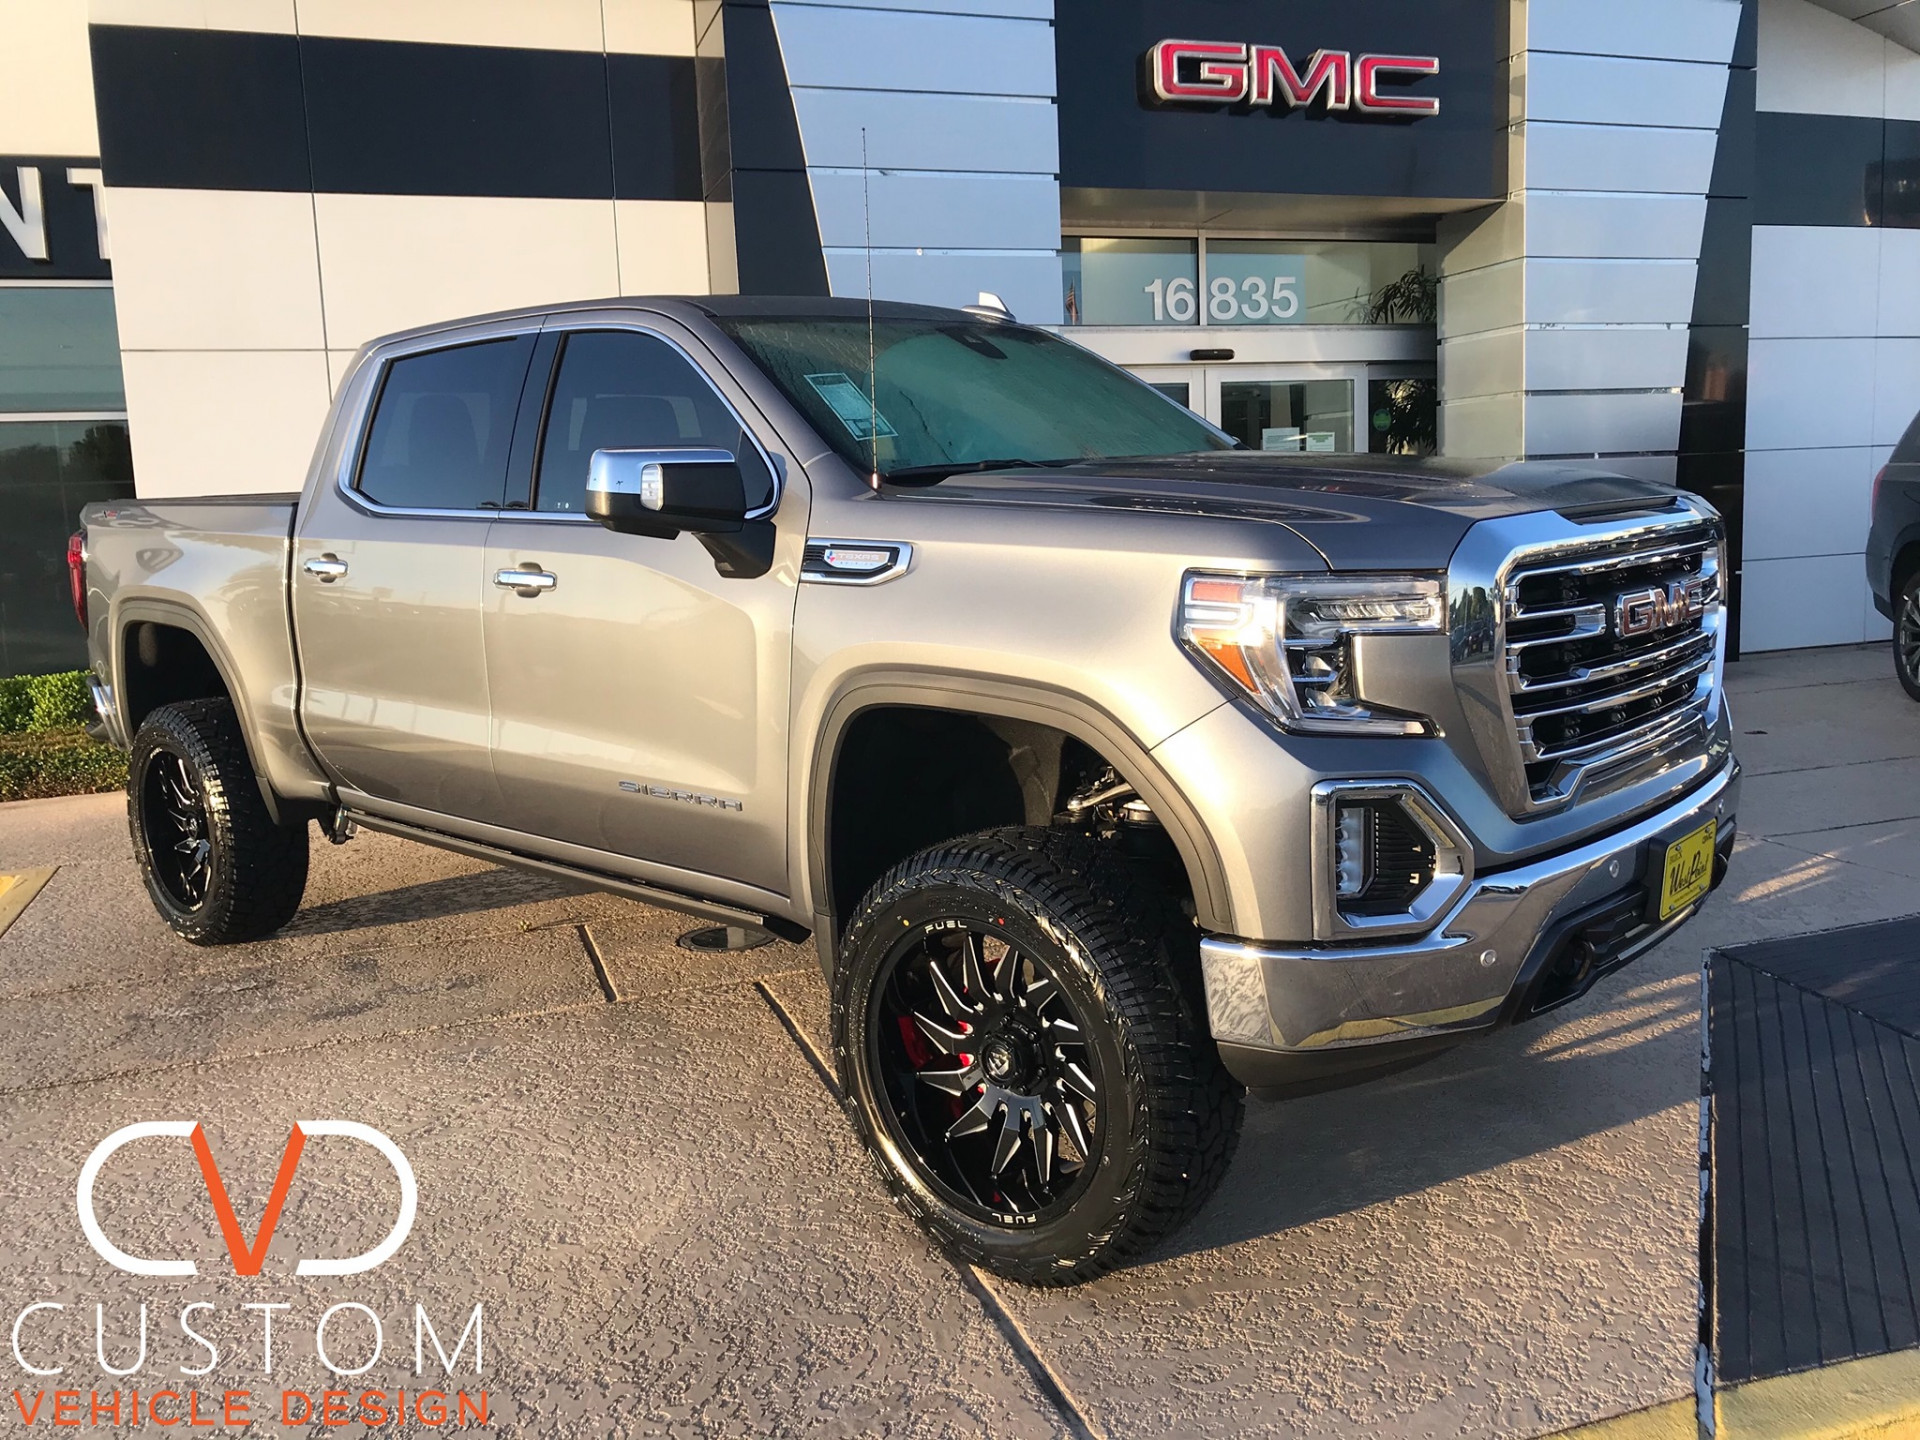 "2020 GMC Sierra with 22"" Fuel Sledge wheels"